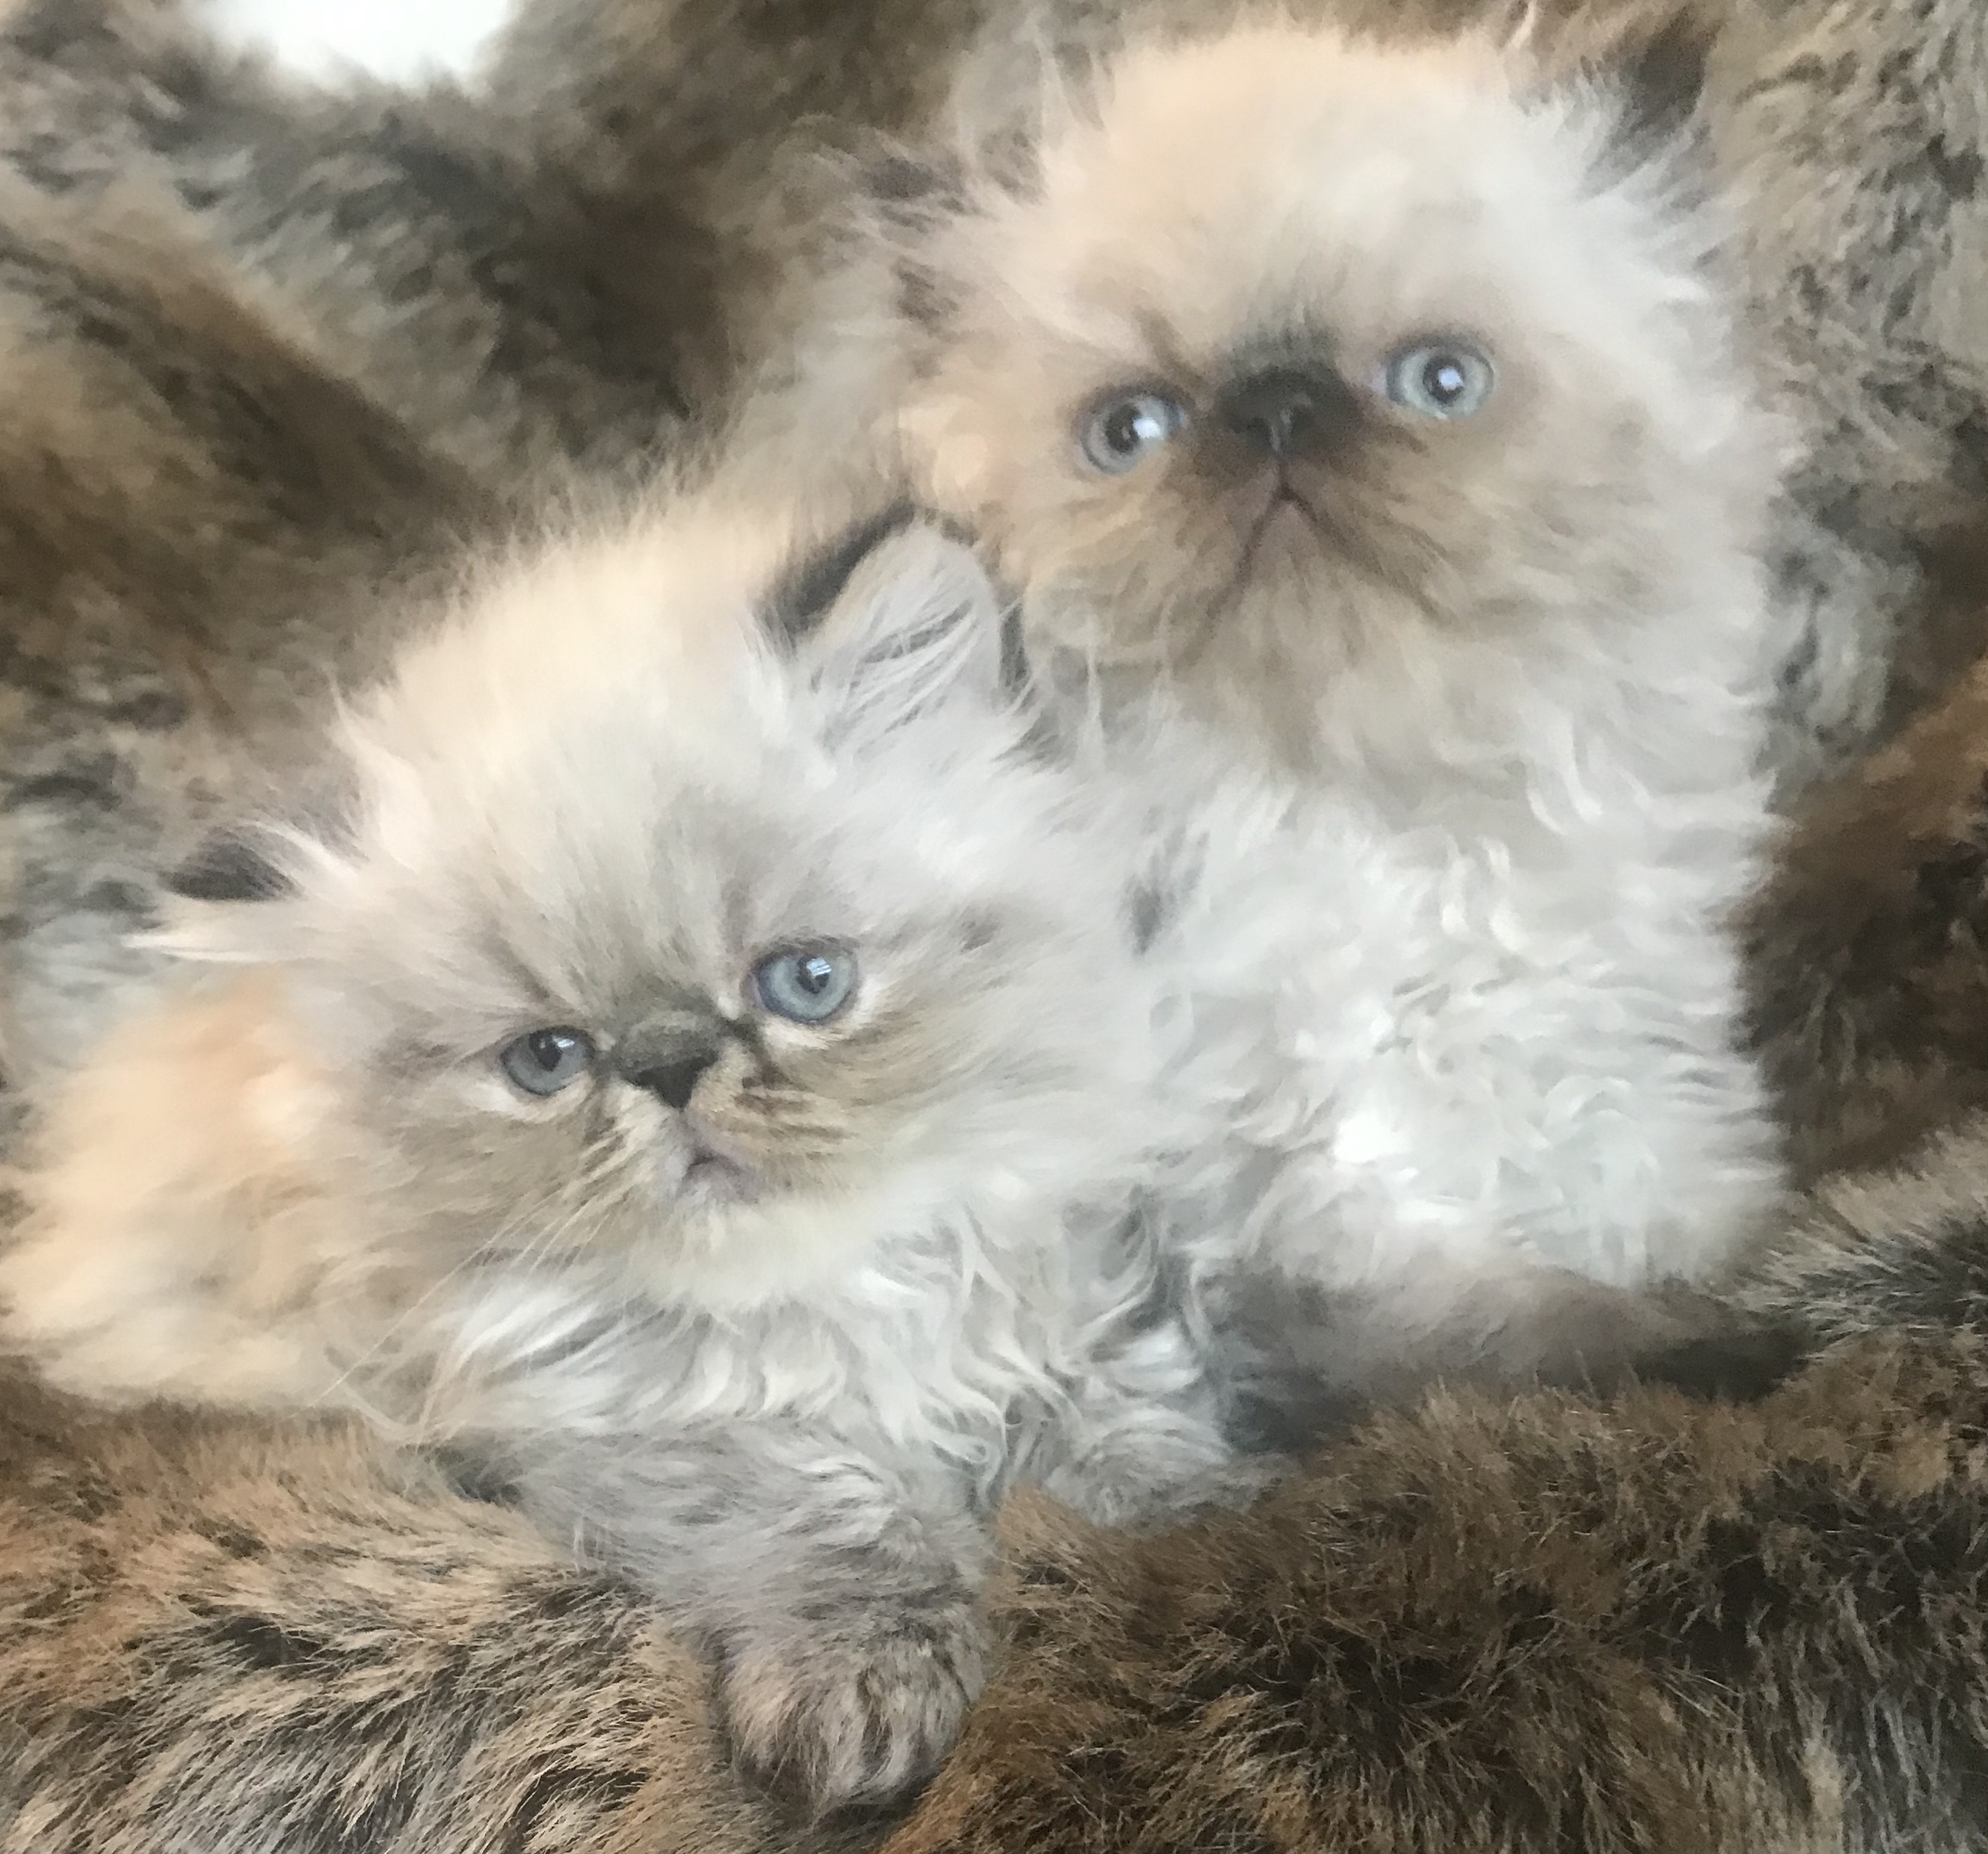 Khloe's Kittens – Persian kittens for sale – Himalayan